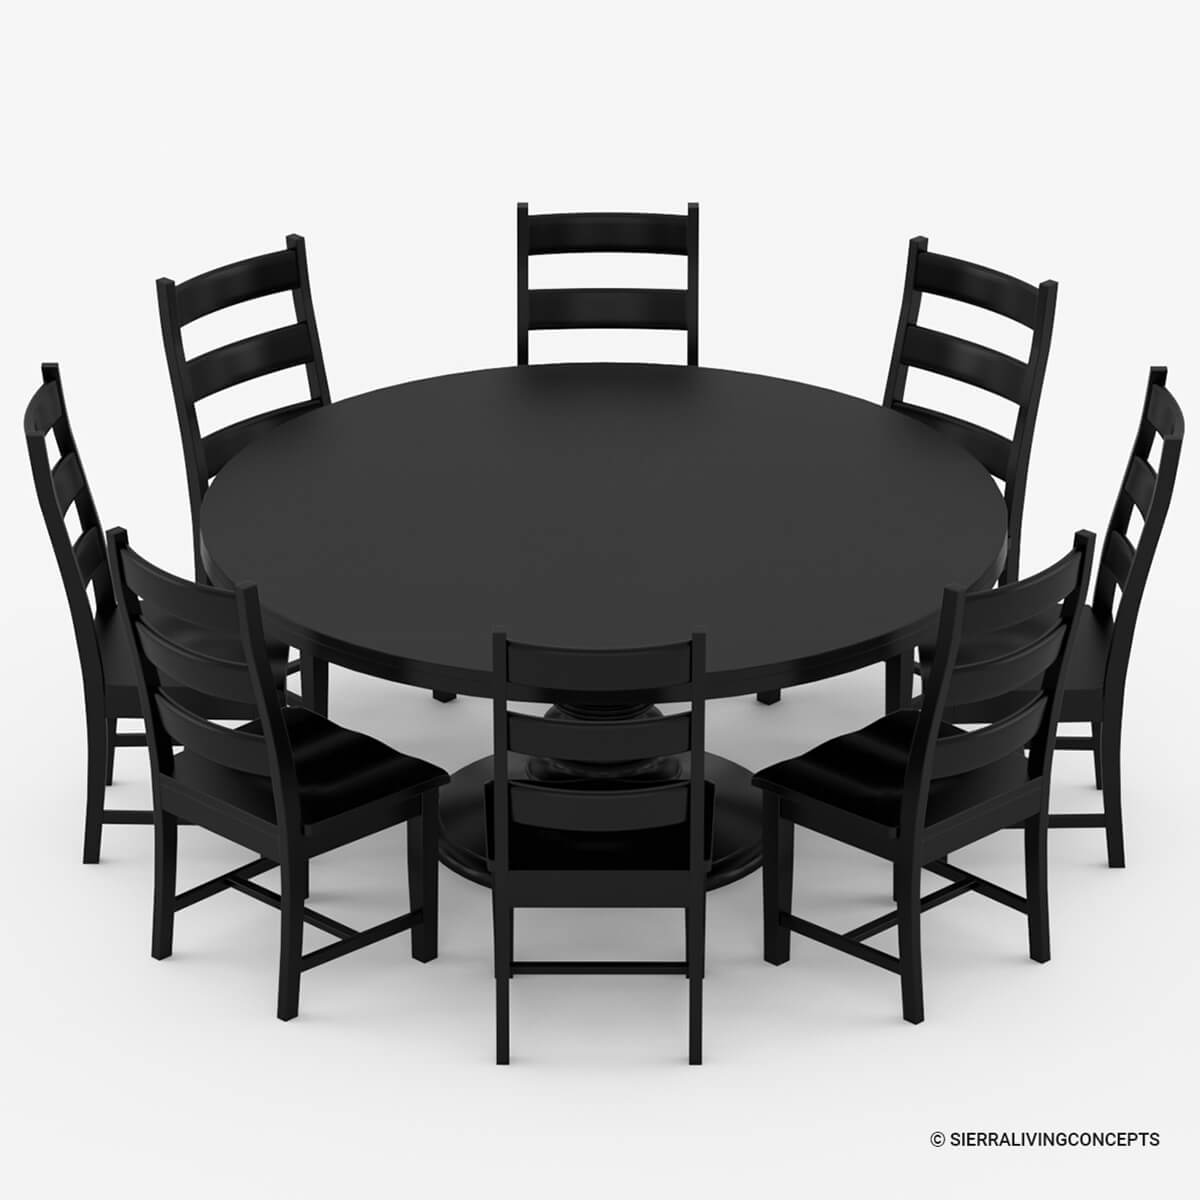 Nottingham rustic solid wood black round dining room table set for Round dining table